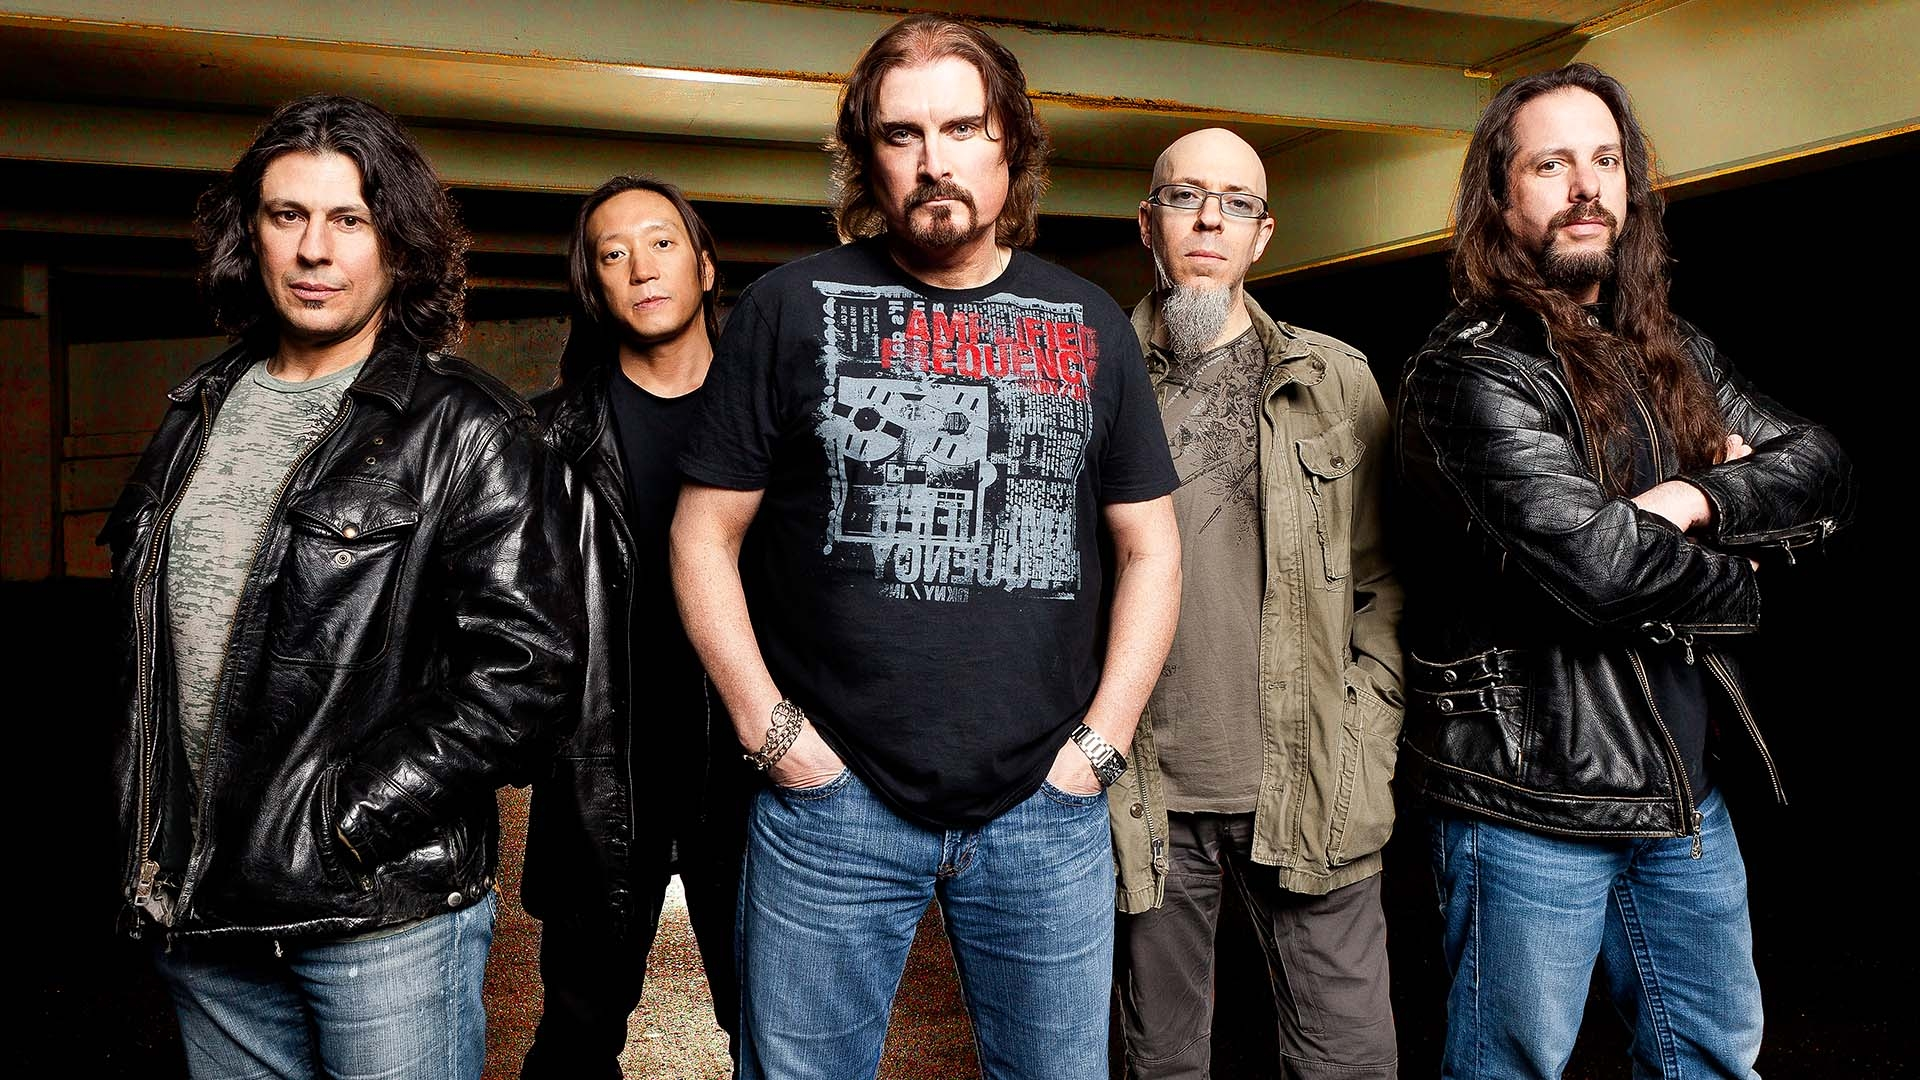 Download Wallpaper 1920x1080 Dream Theater Band Jackets Basement Glasses Full Hd 1080p Hd Background